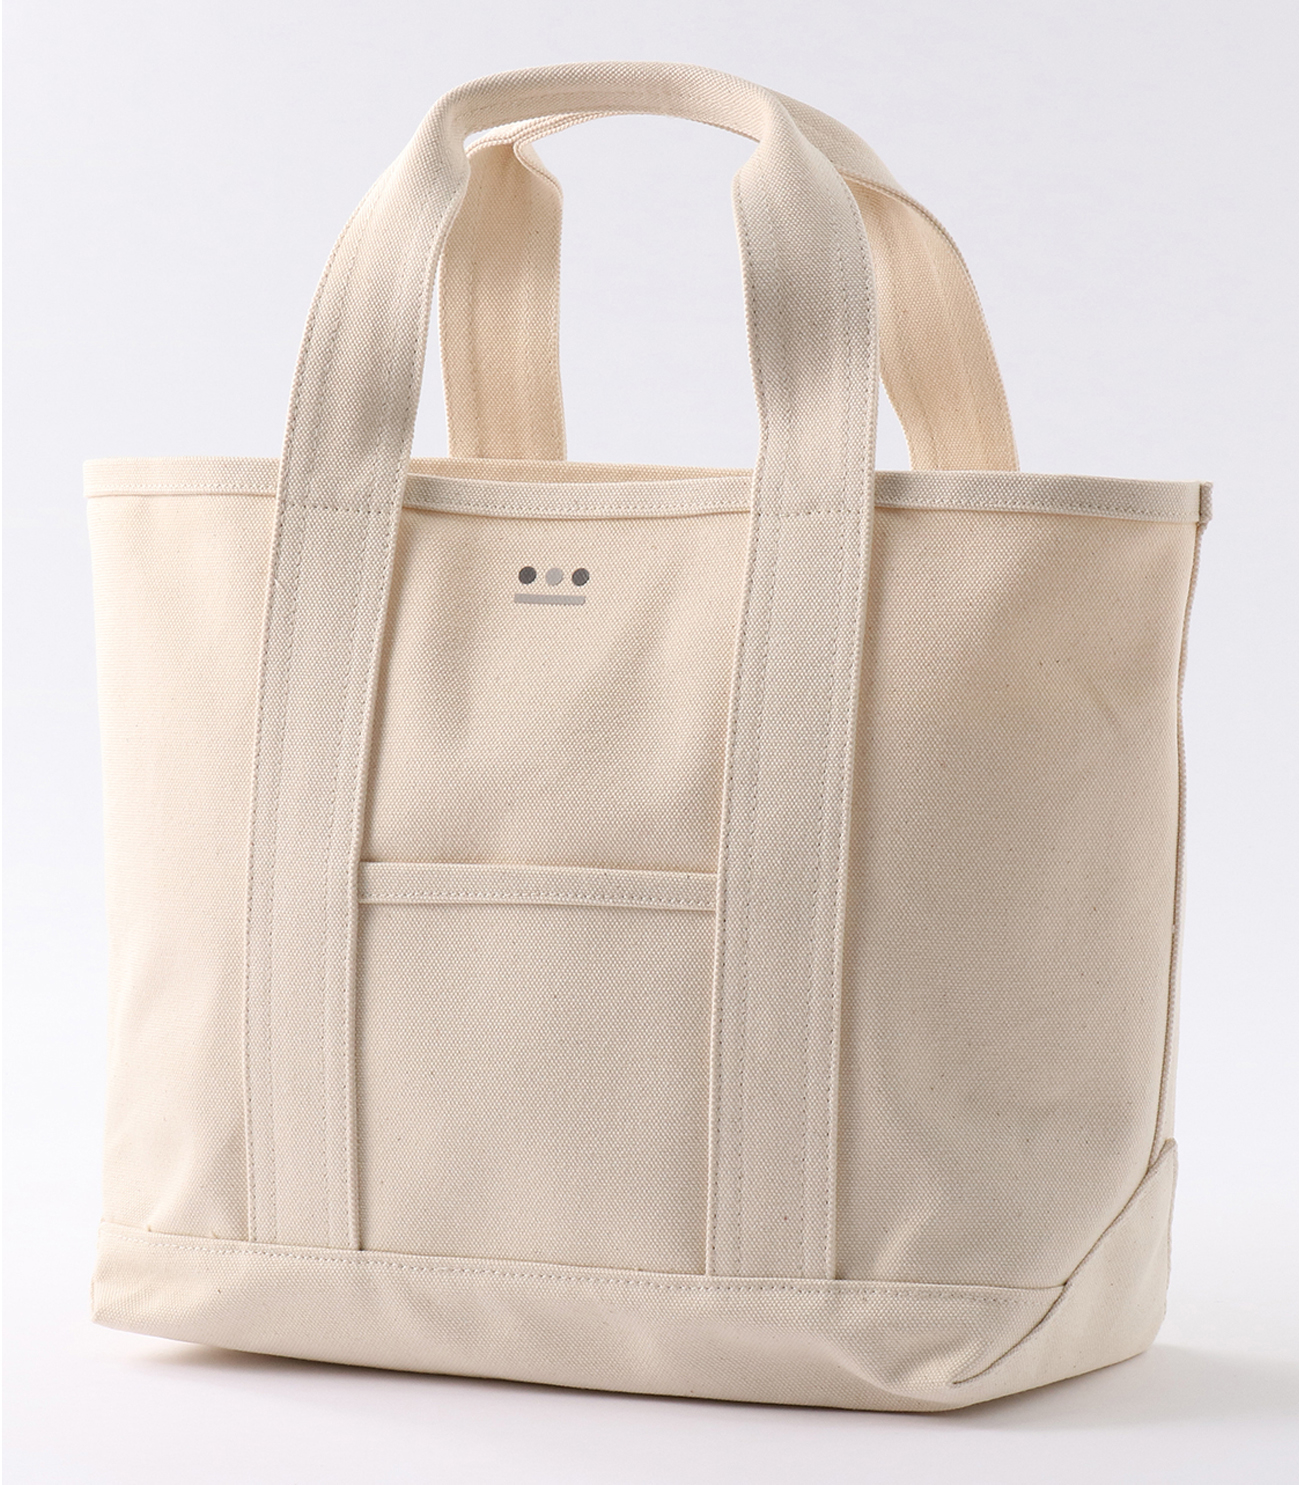 middle tote bag 詳細画像 white 1